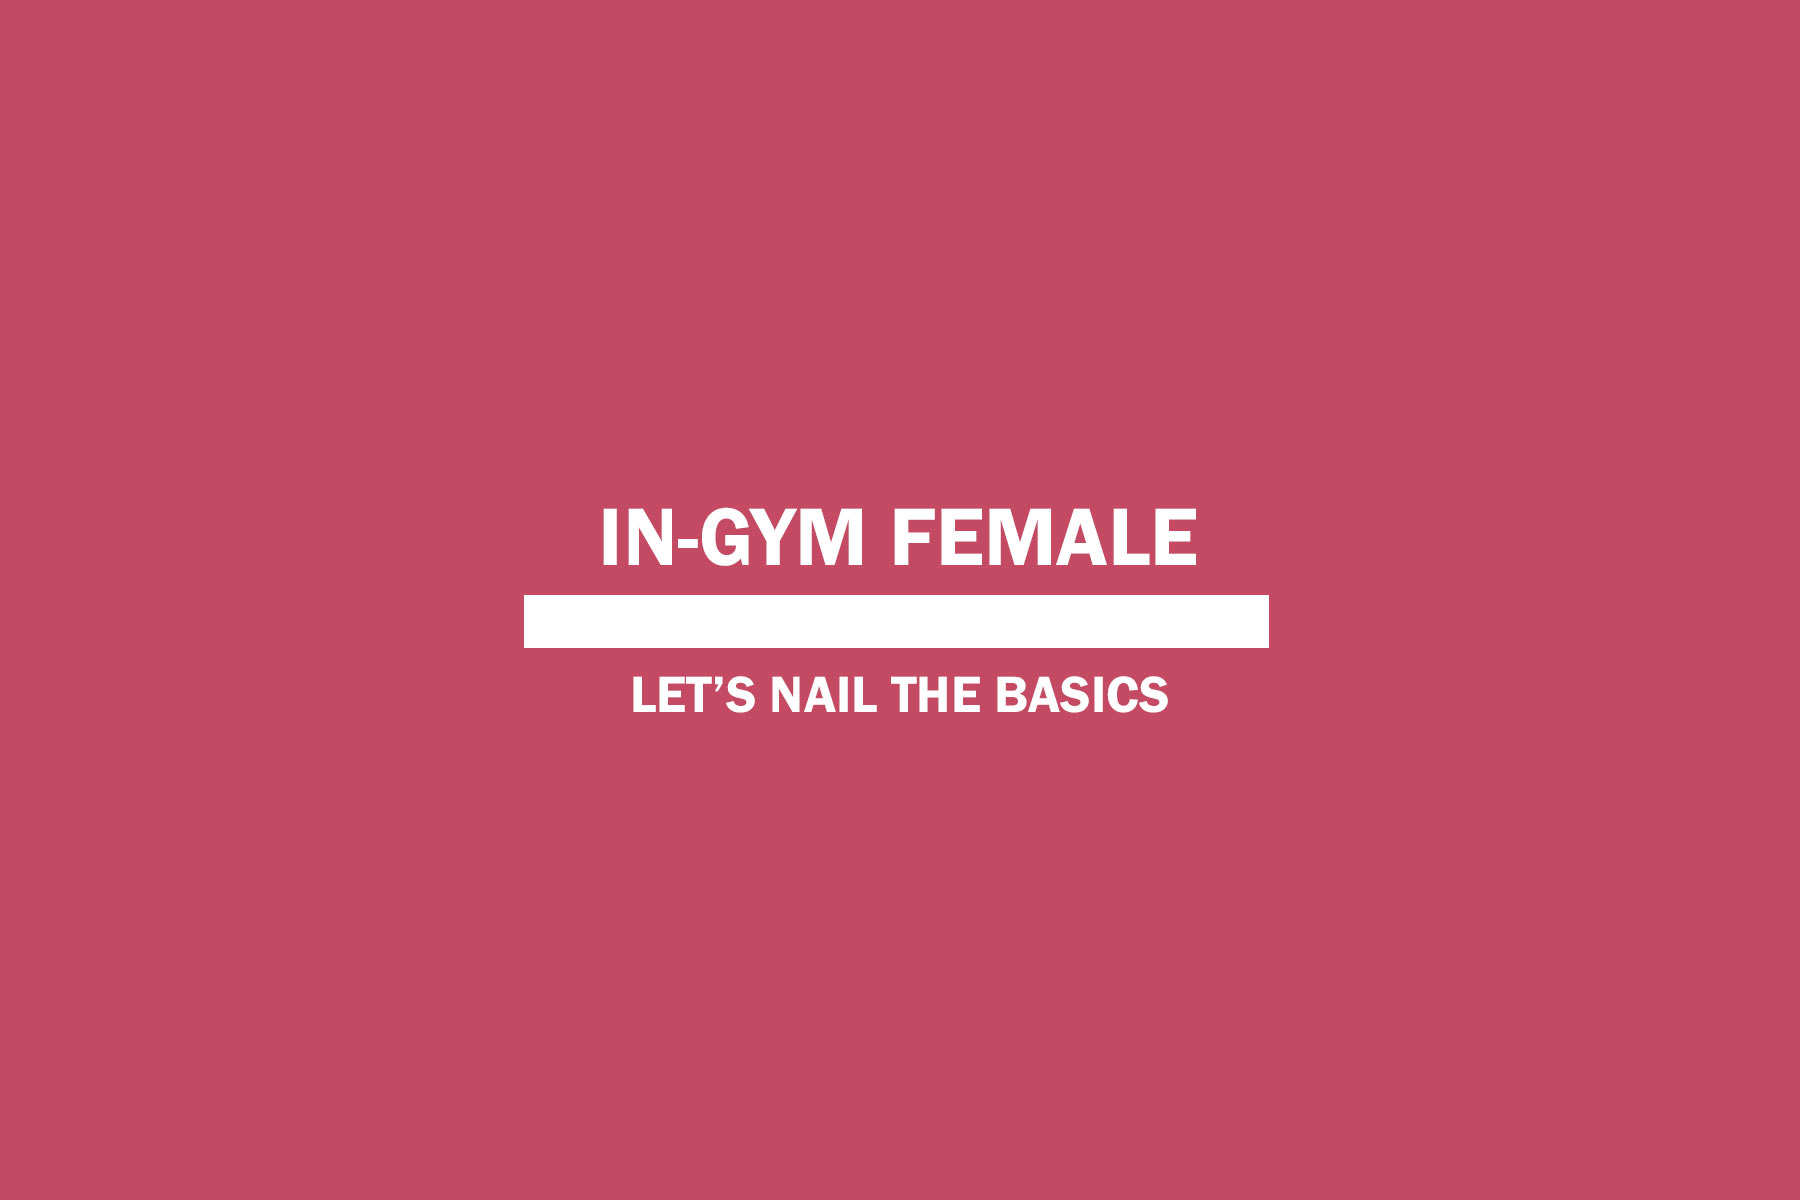 In-gym Female 22nd of April to 13th of May